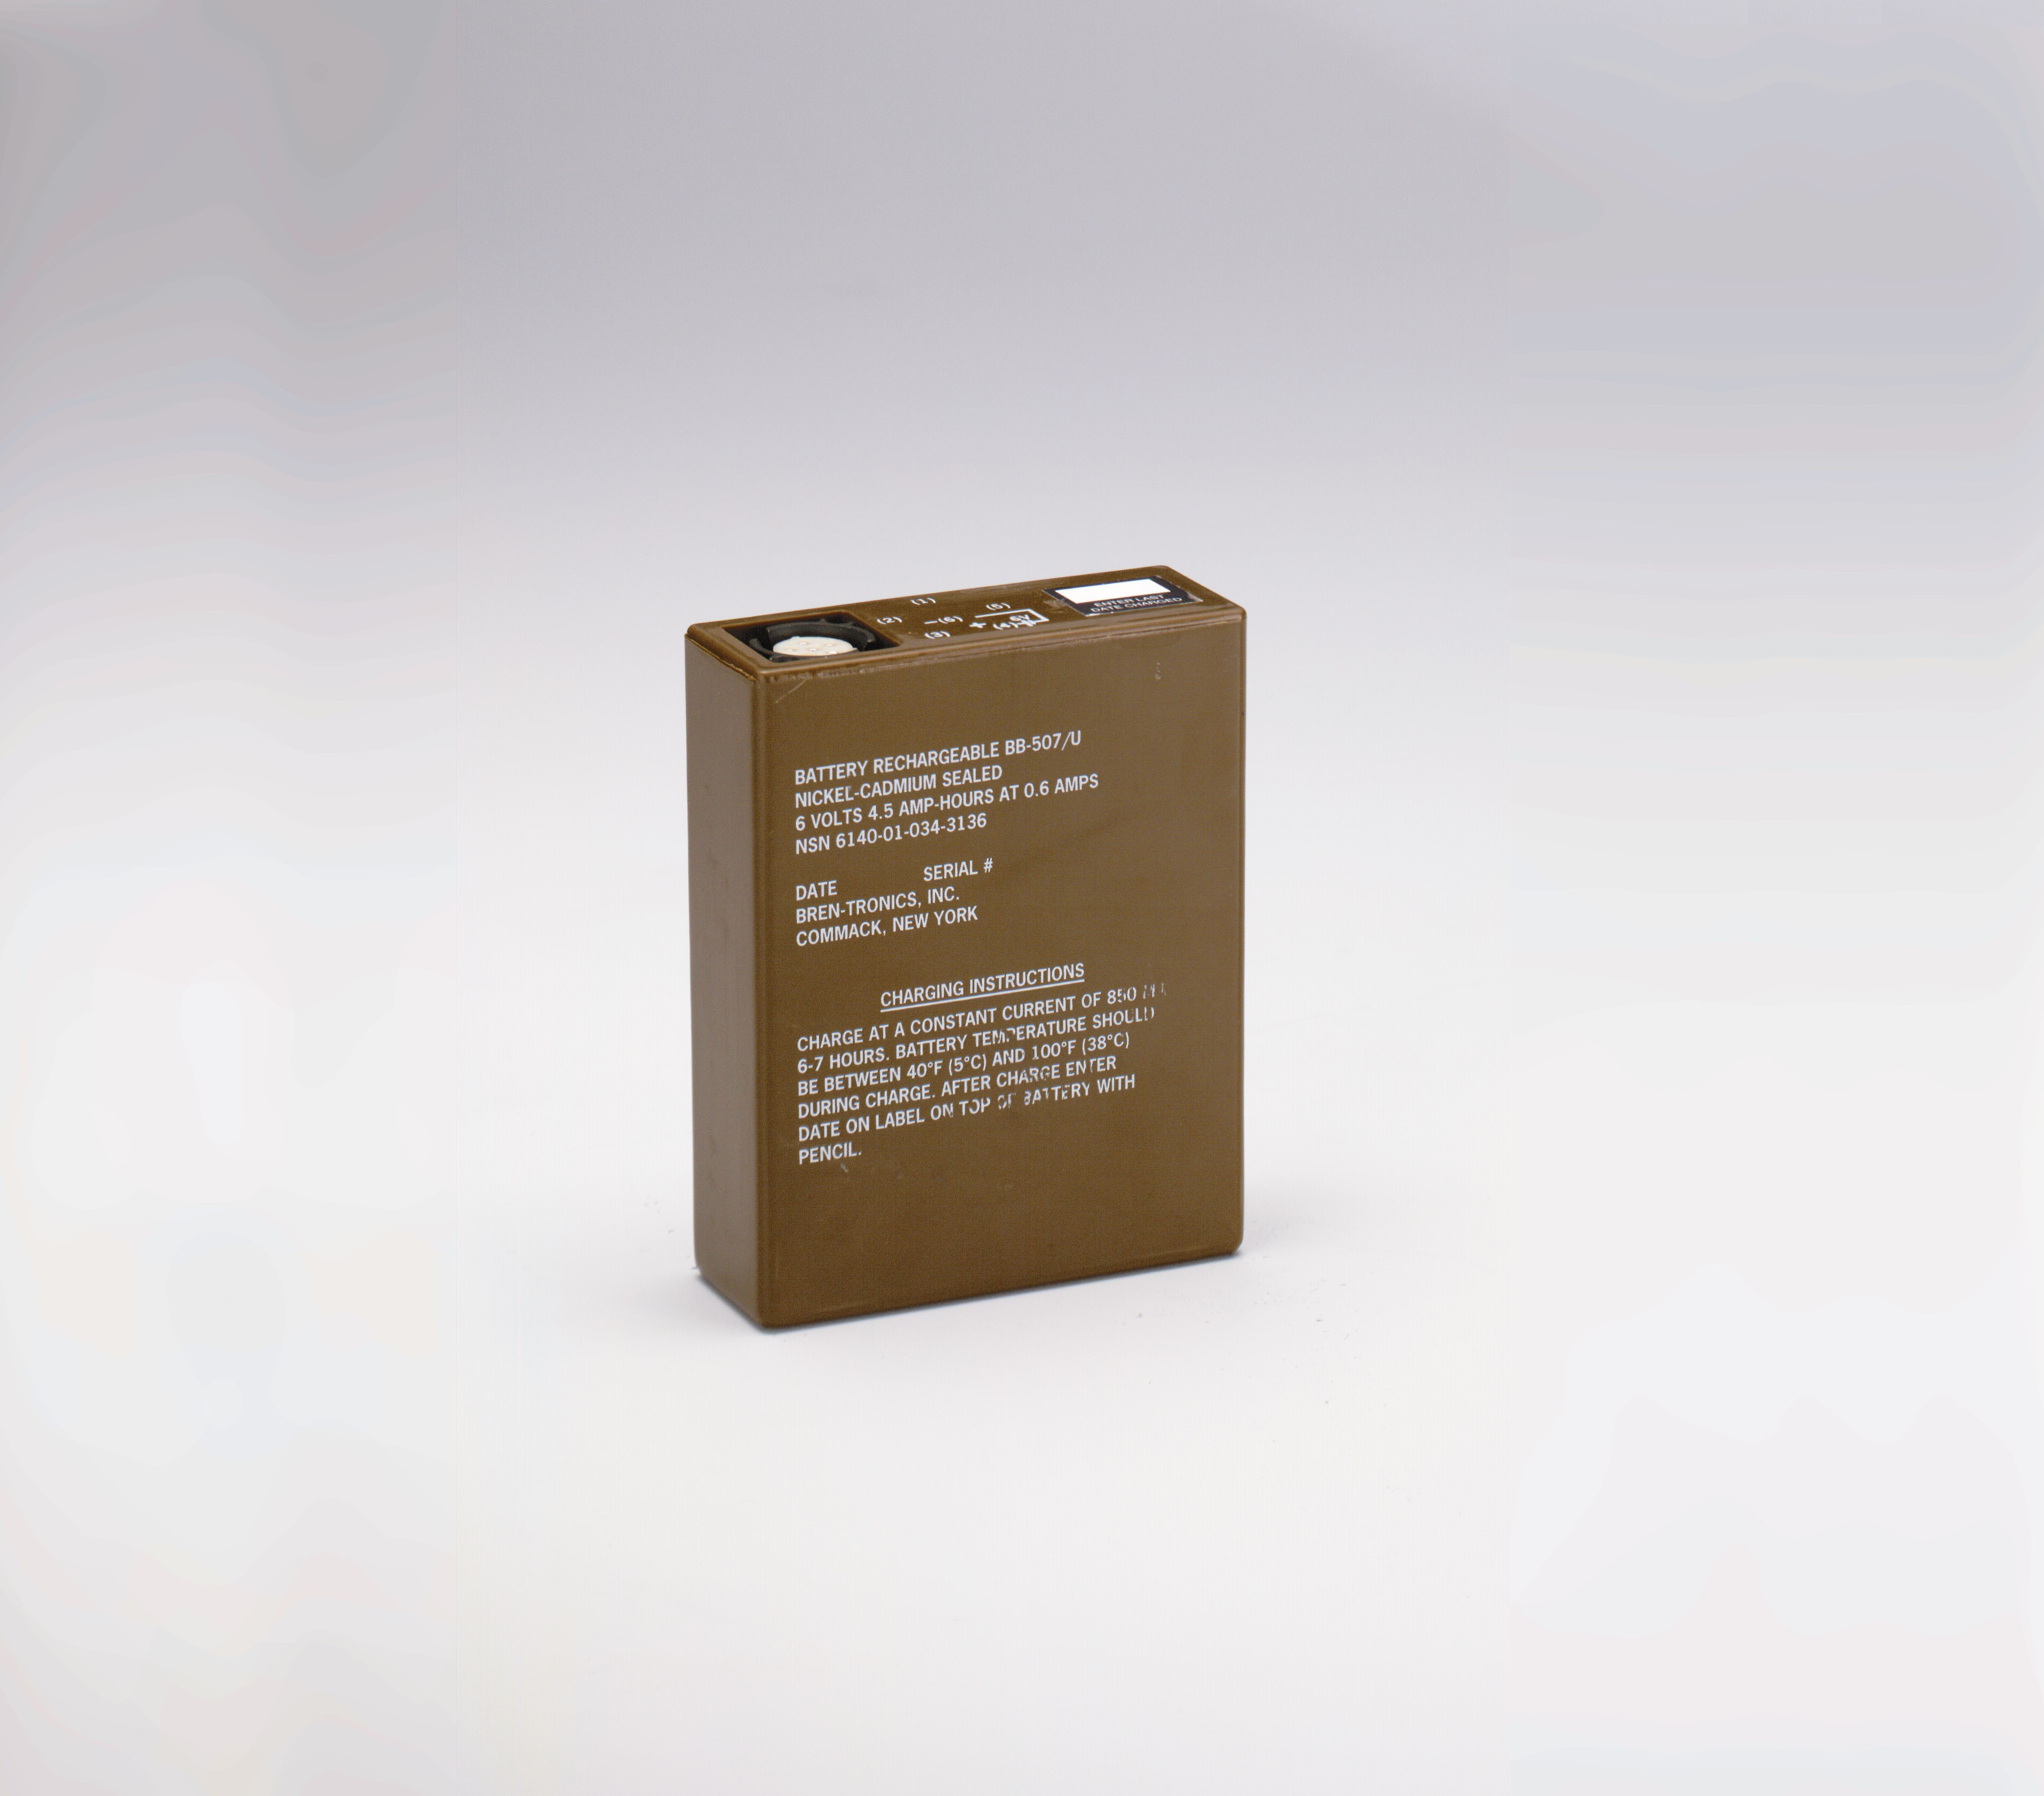 Battery: BT-70660 (BB-507/U)